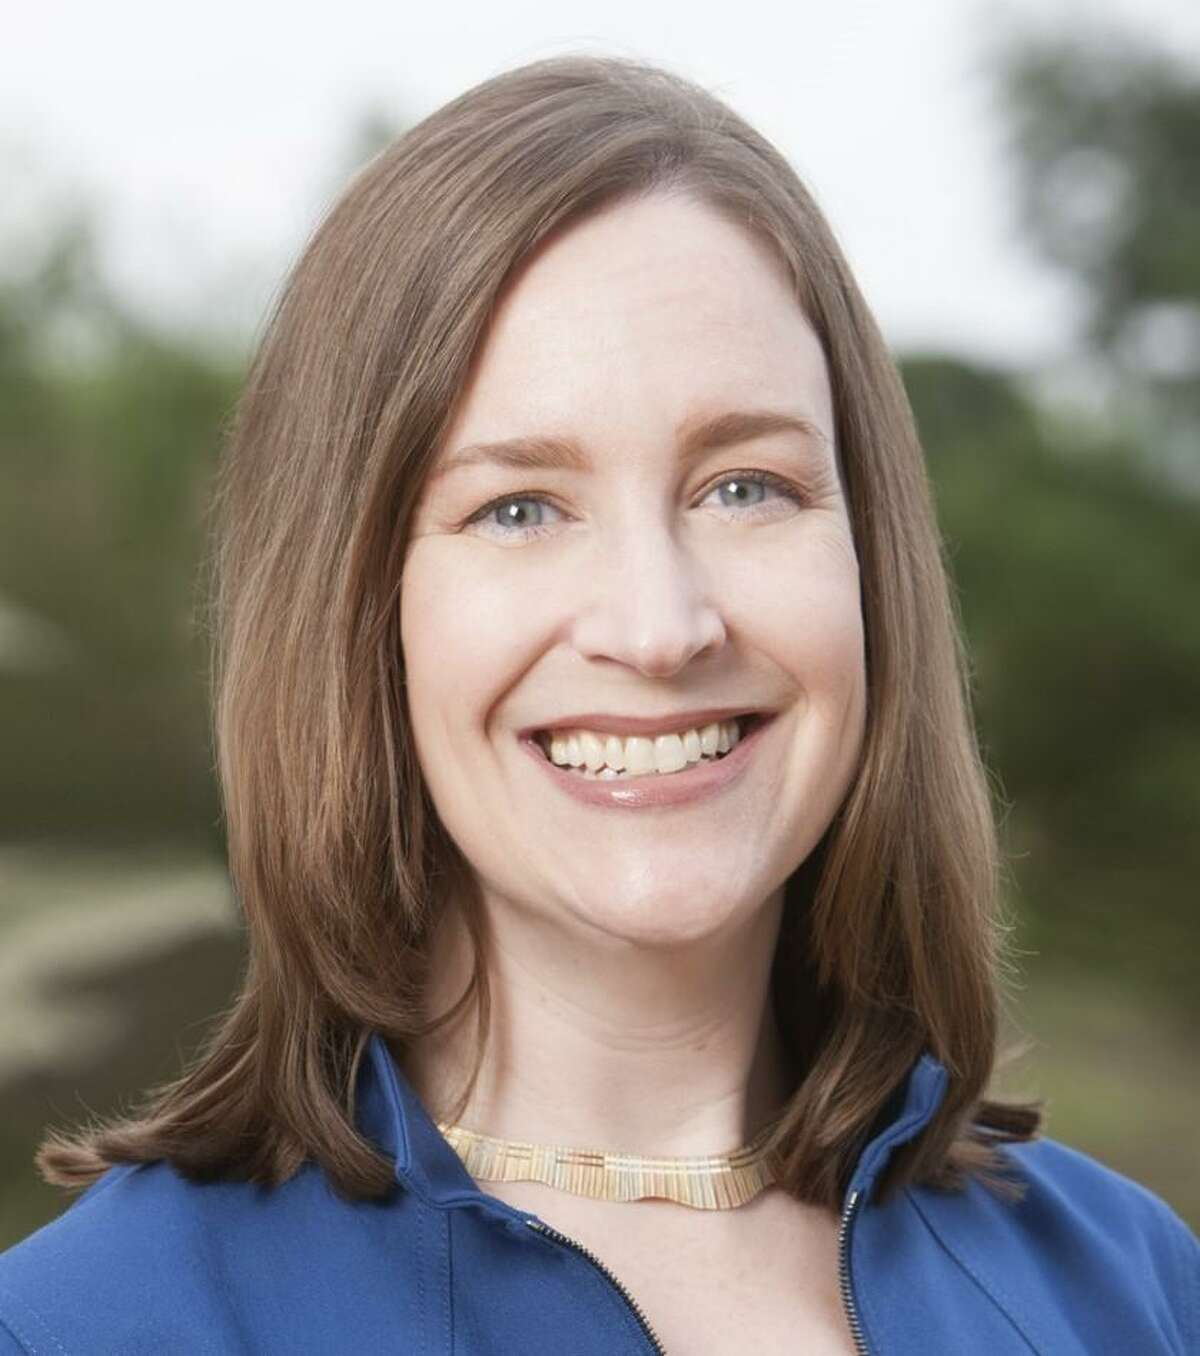 Jill Vassar was announced Friday as the EPIcenter's new director of development and partnerships. The EPIcenter is a planned energy innovation and museum complex at CPS Energy's former Mission Road power plant